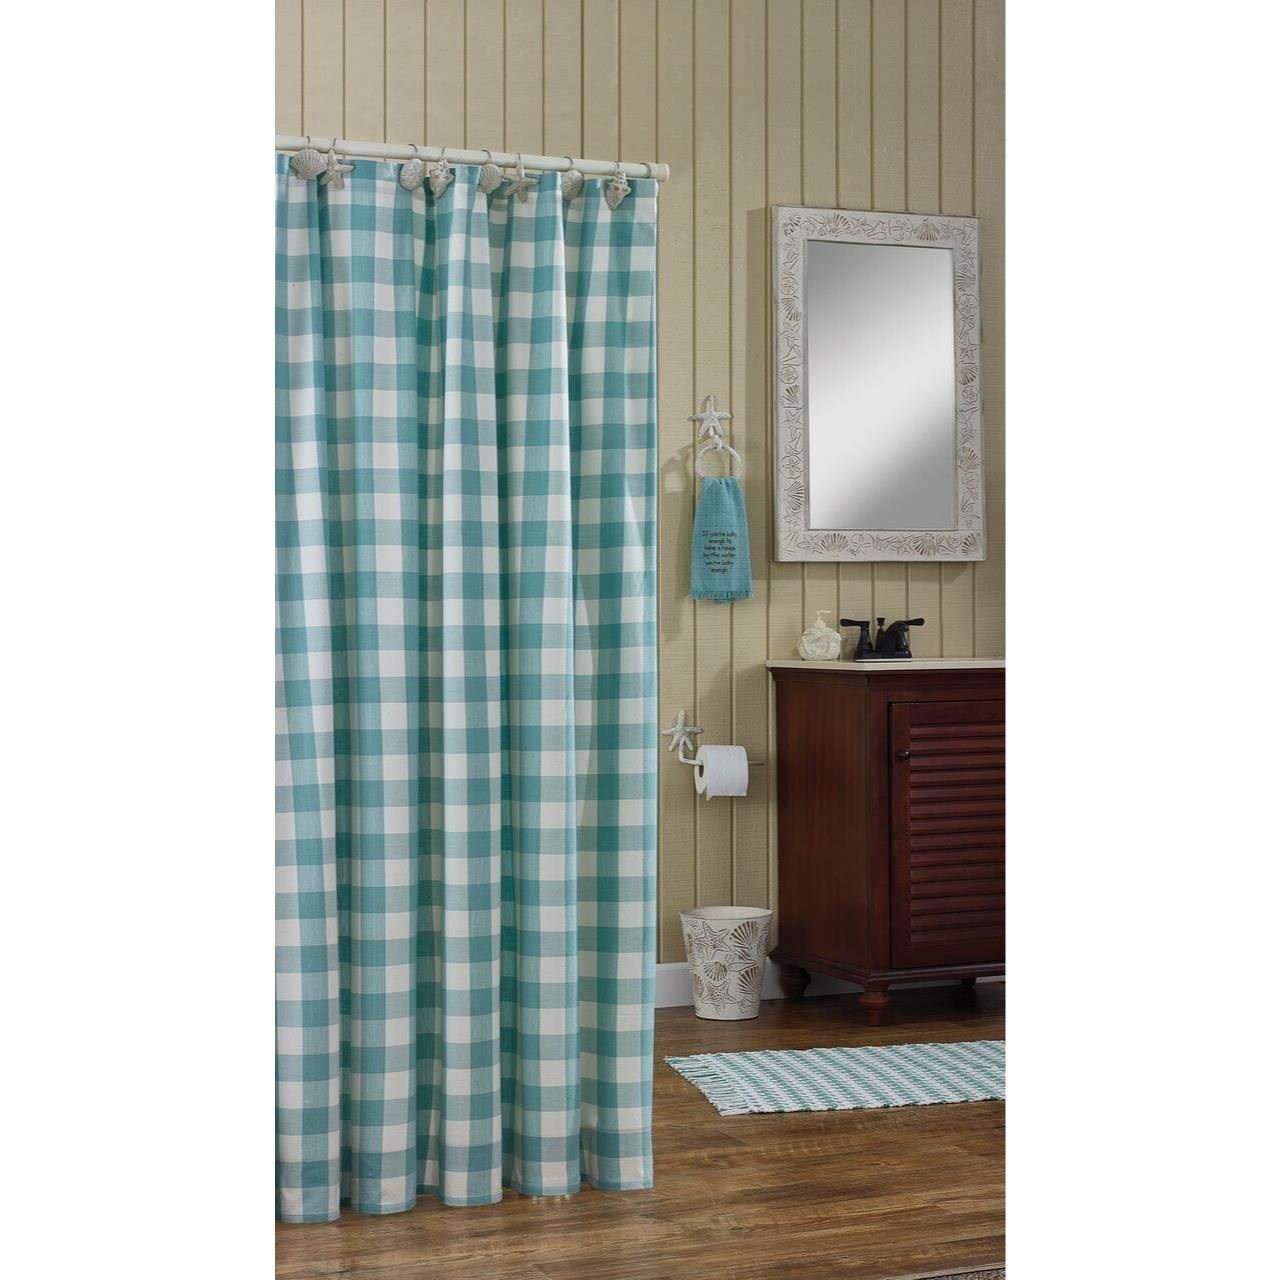 Shower Curtains 20441: (1) Wicklow Soft Sea Blue Check Cotton Country Bath  Shower